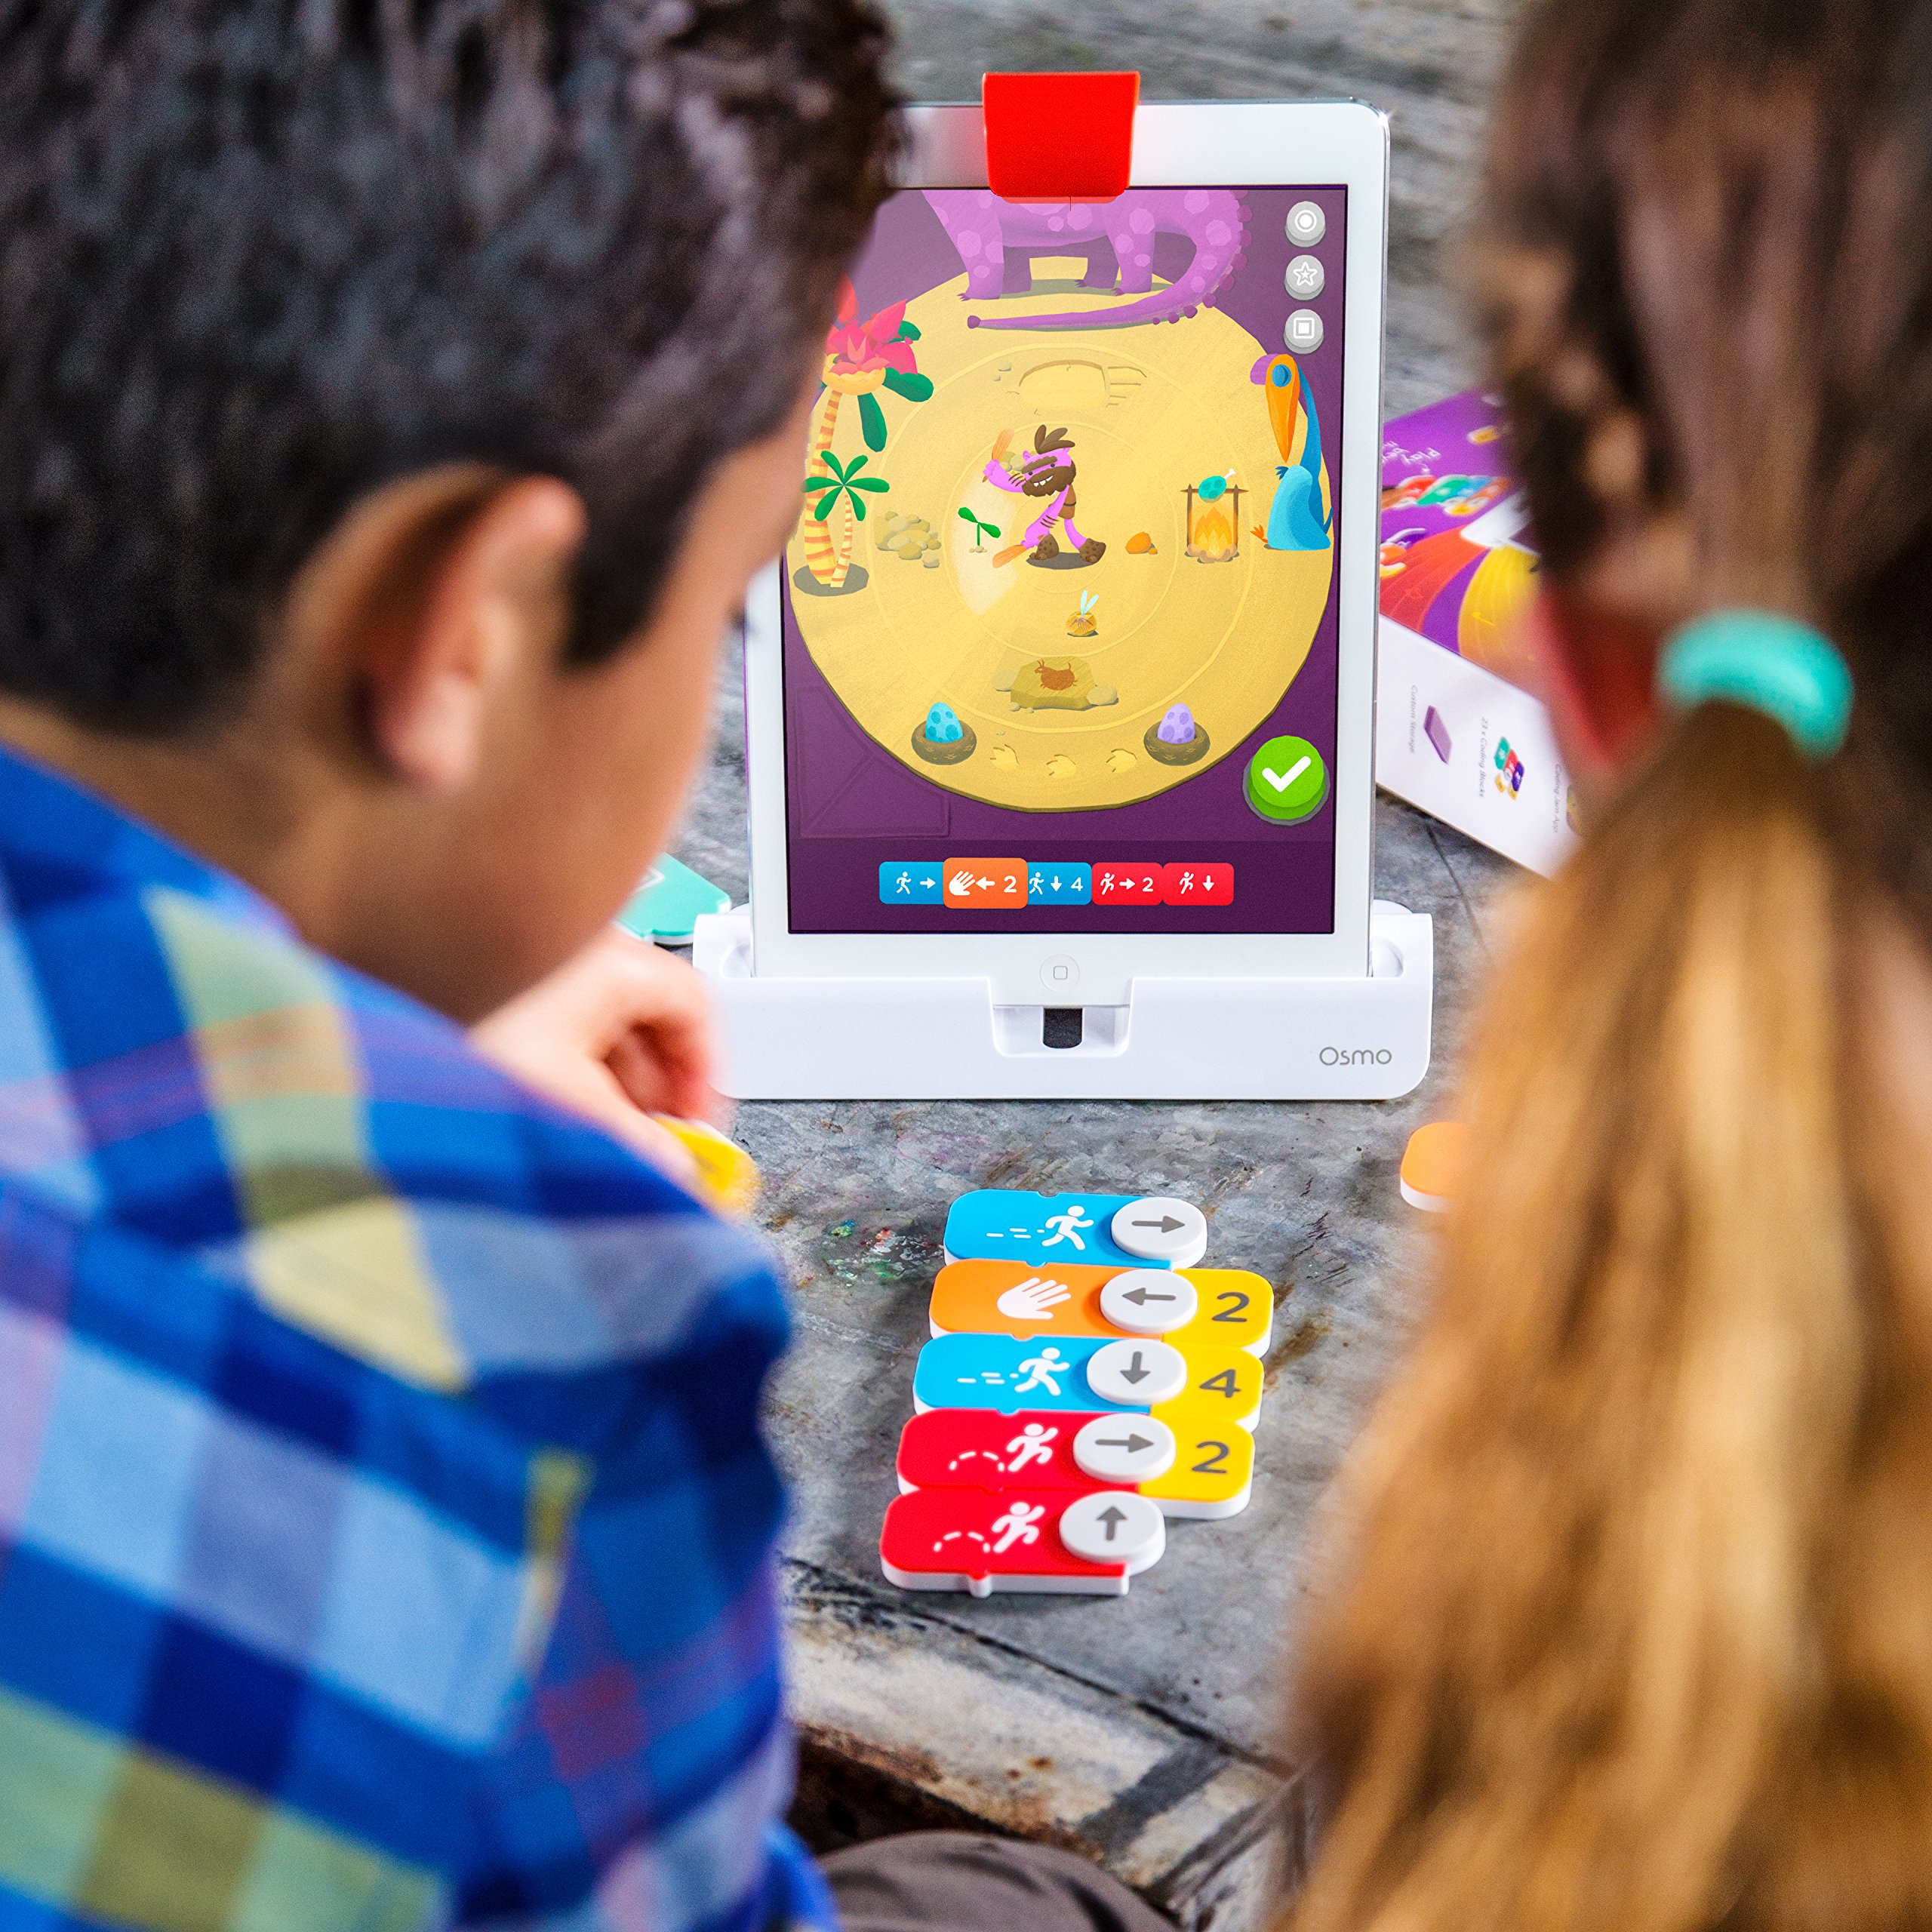 Osmo - Coding Jam - Ages 6-12 - Music Creation, Coding & Problem Solving - For iPad and Fire Tablet (Osmo Base Required) by Osmo (Image #5)